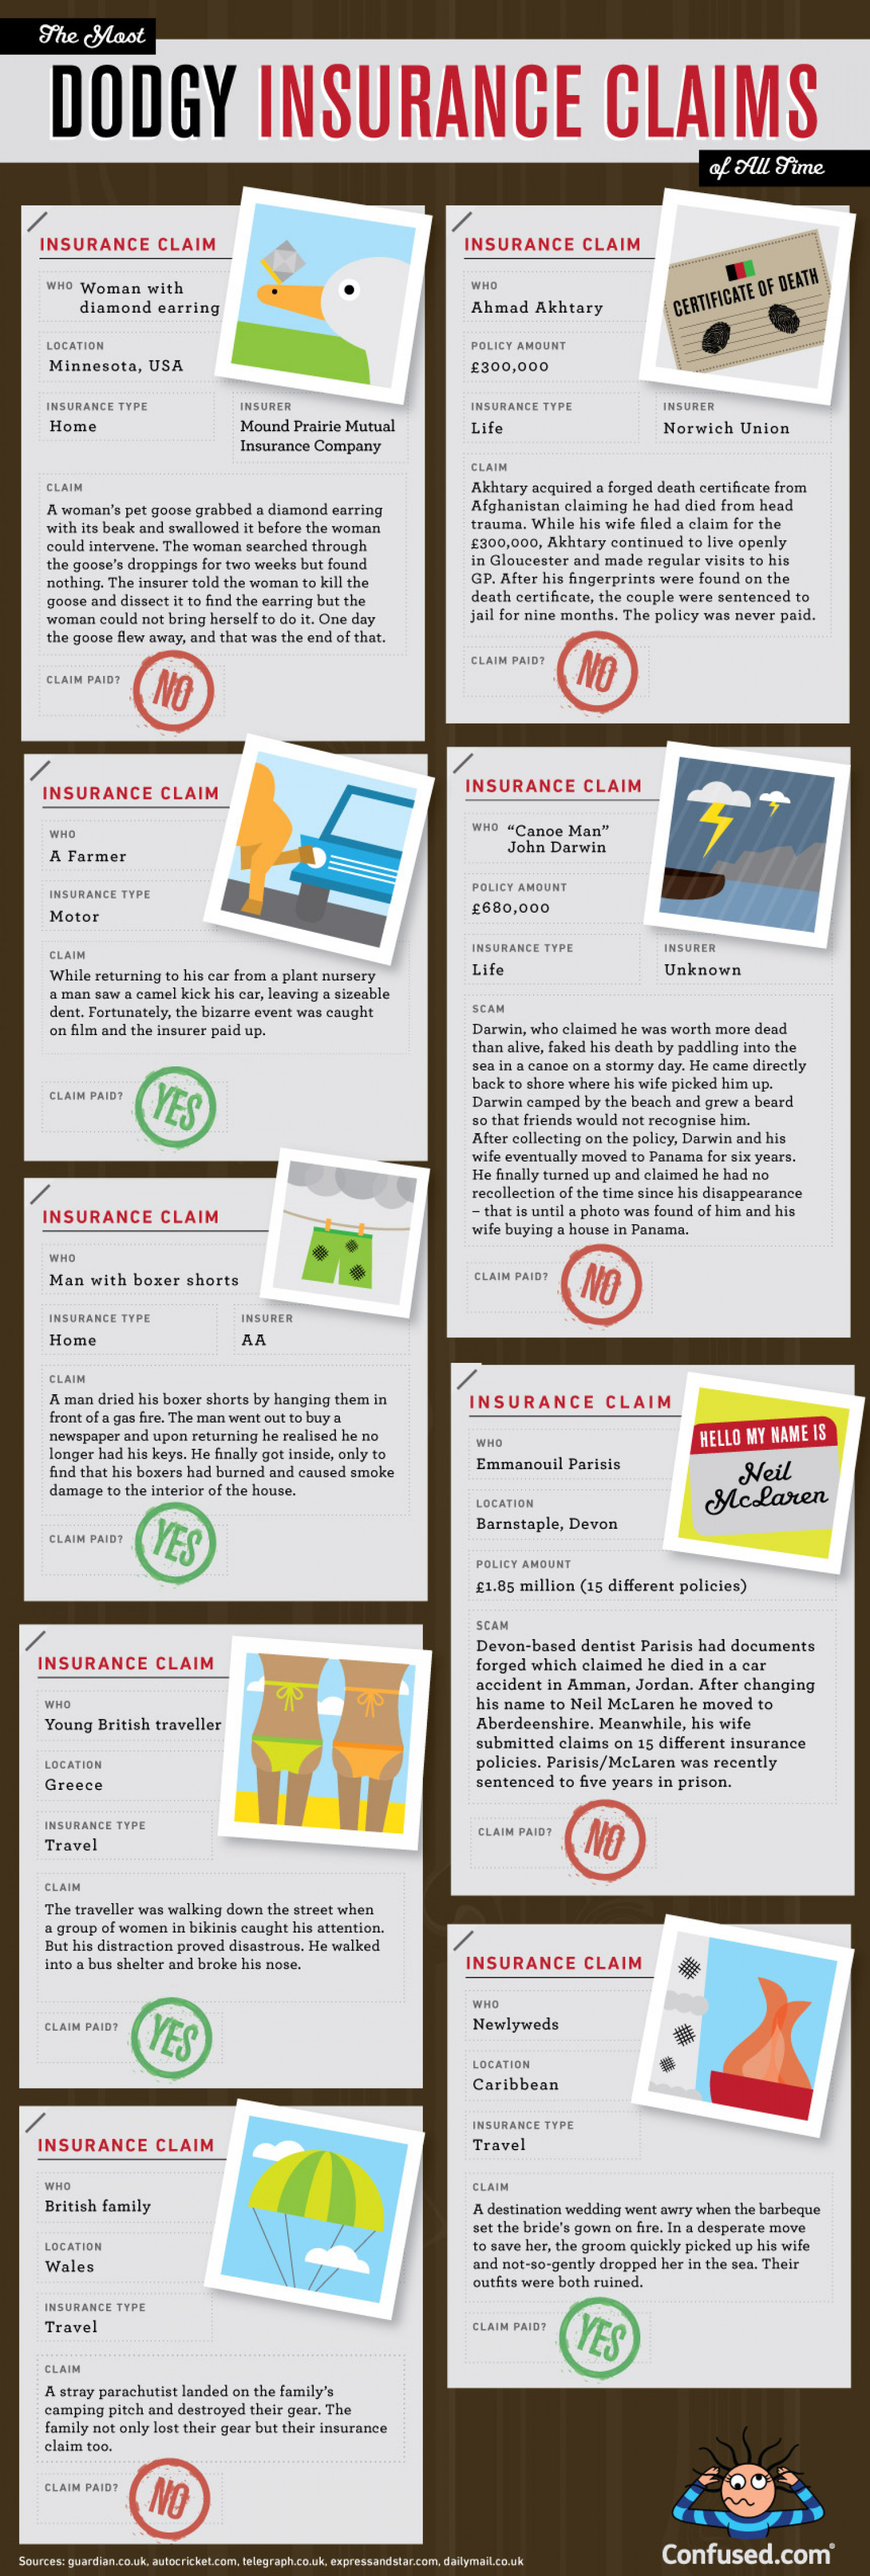 The Most Dodgy Insurance Claims of All Time Infographic